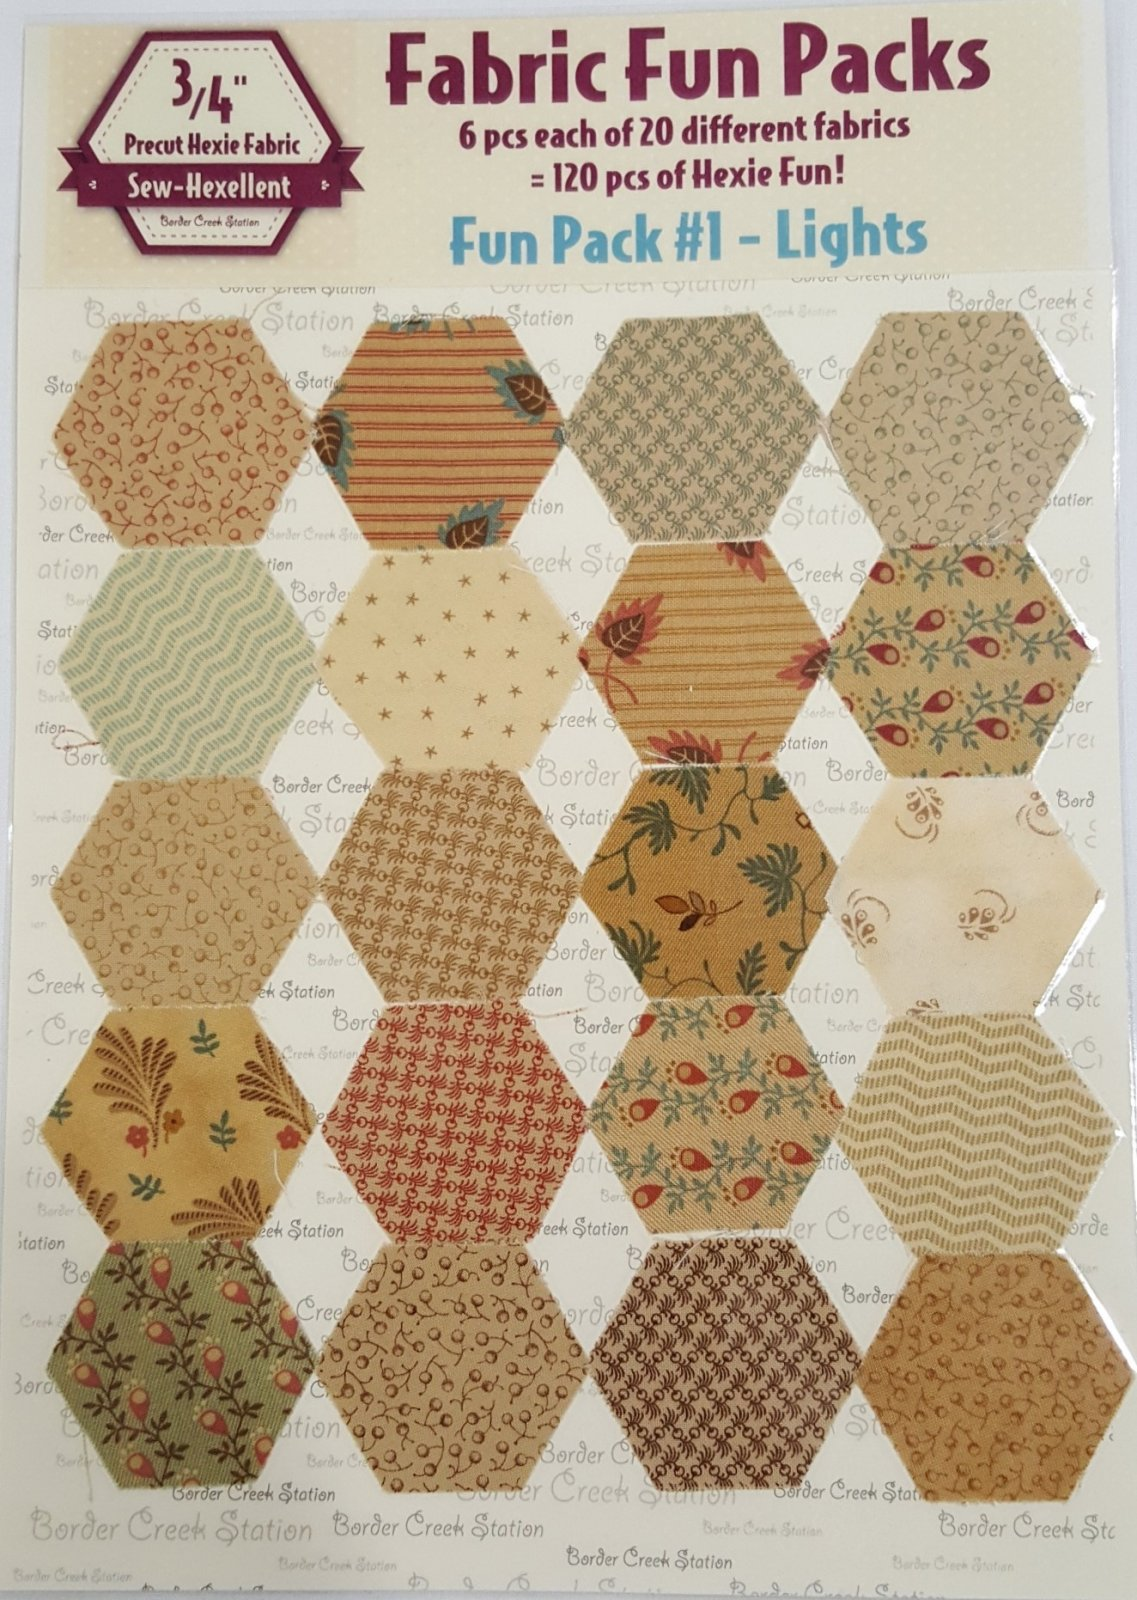 Sew-Hexellent Fun Pack Precuts for 3/4 Hexies